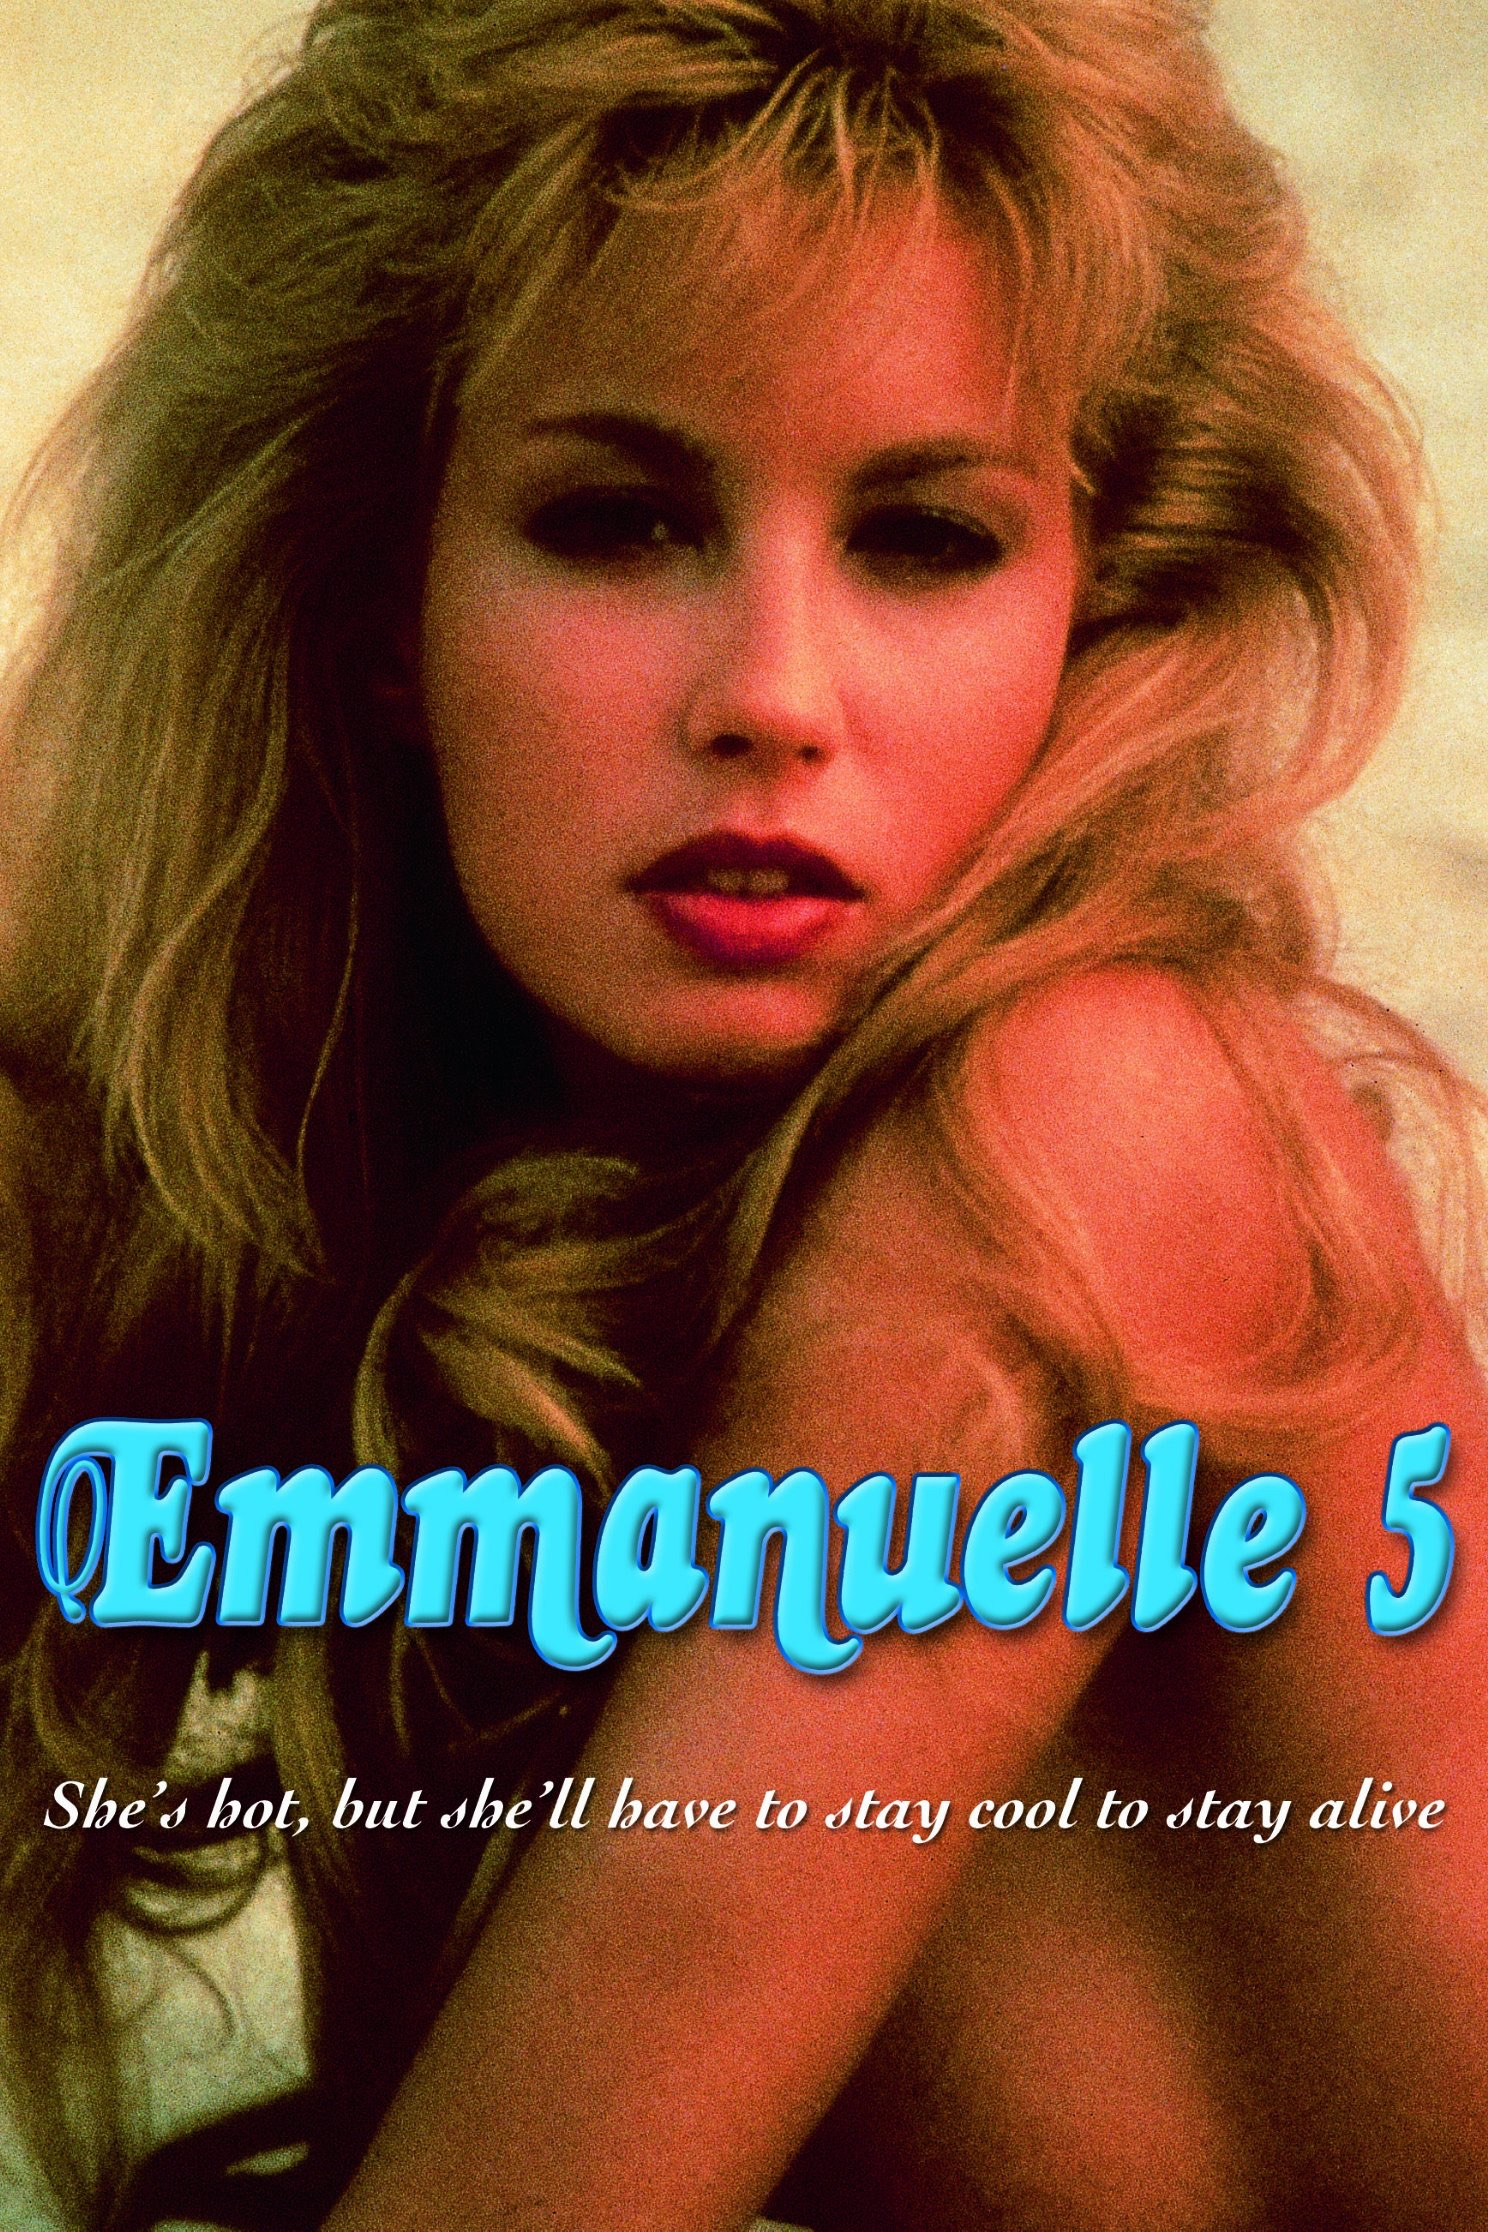 Emmanuelle sex lives of ghosts nude thumbs